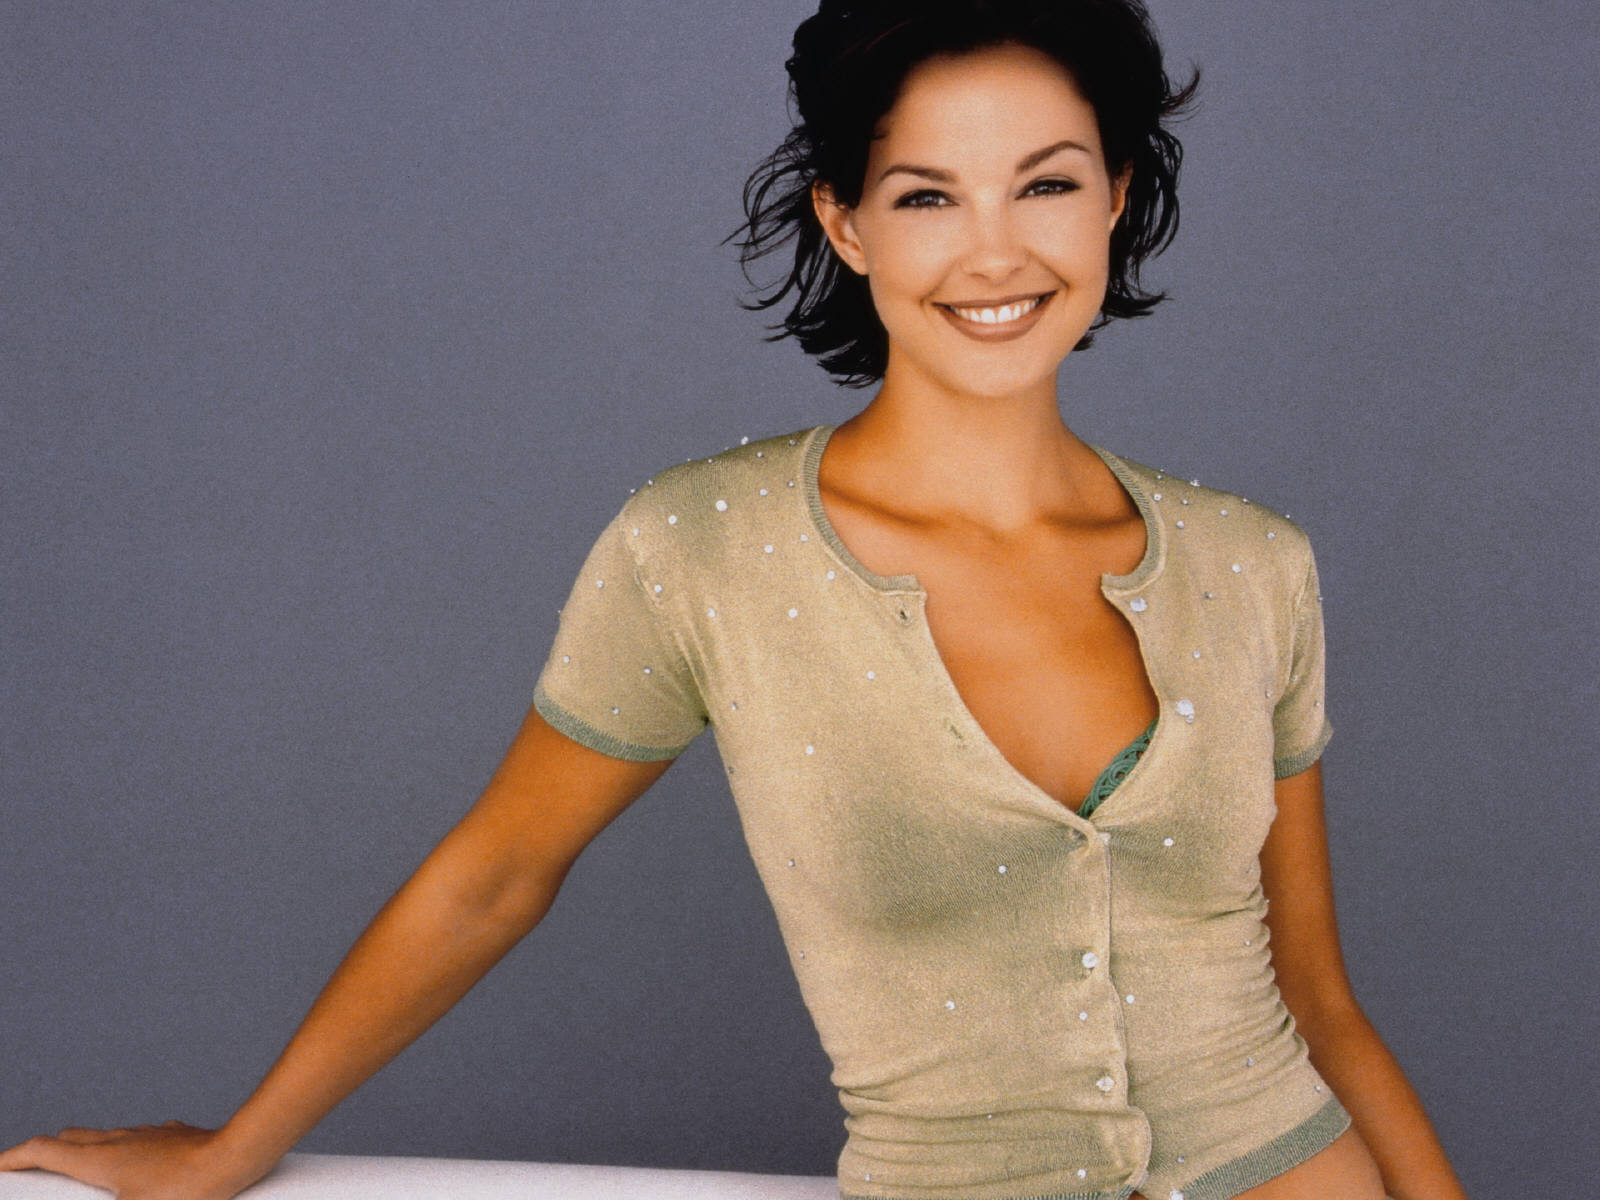 http://2.bp.blogspot.com/_a9Iw76eLErY/TF7pHpqH11I/AAAAAAAAAvI/iQq3MBodd4Q/s1600/Ashley_Judd_0063_1600X1200_Wallpaper.jpg